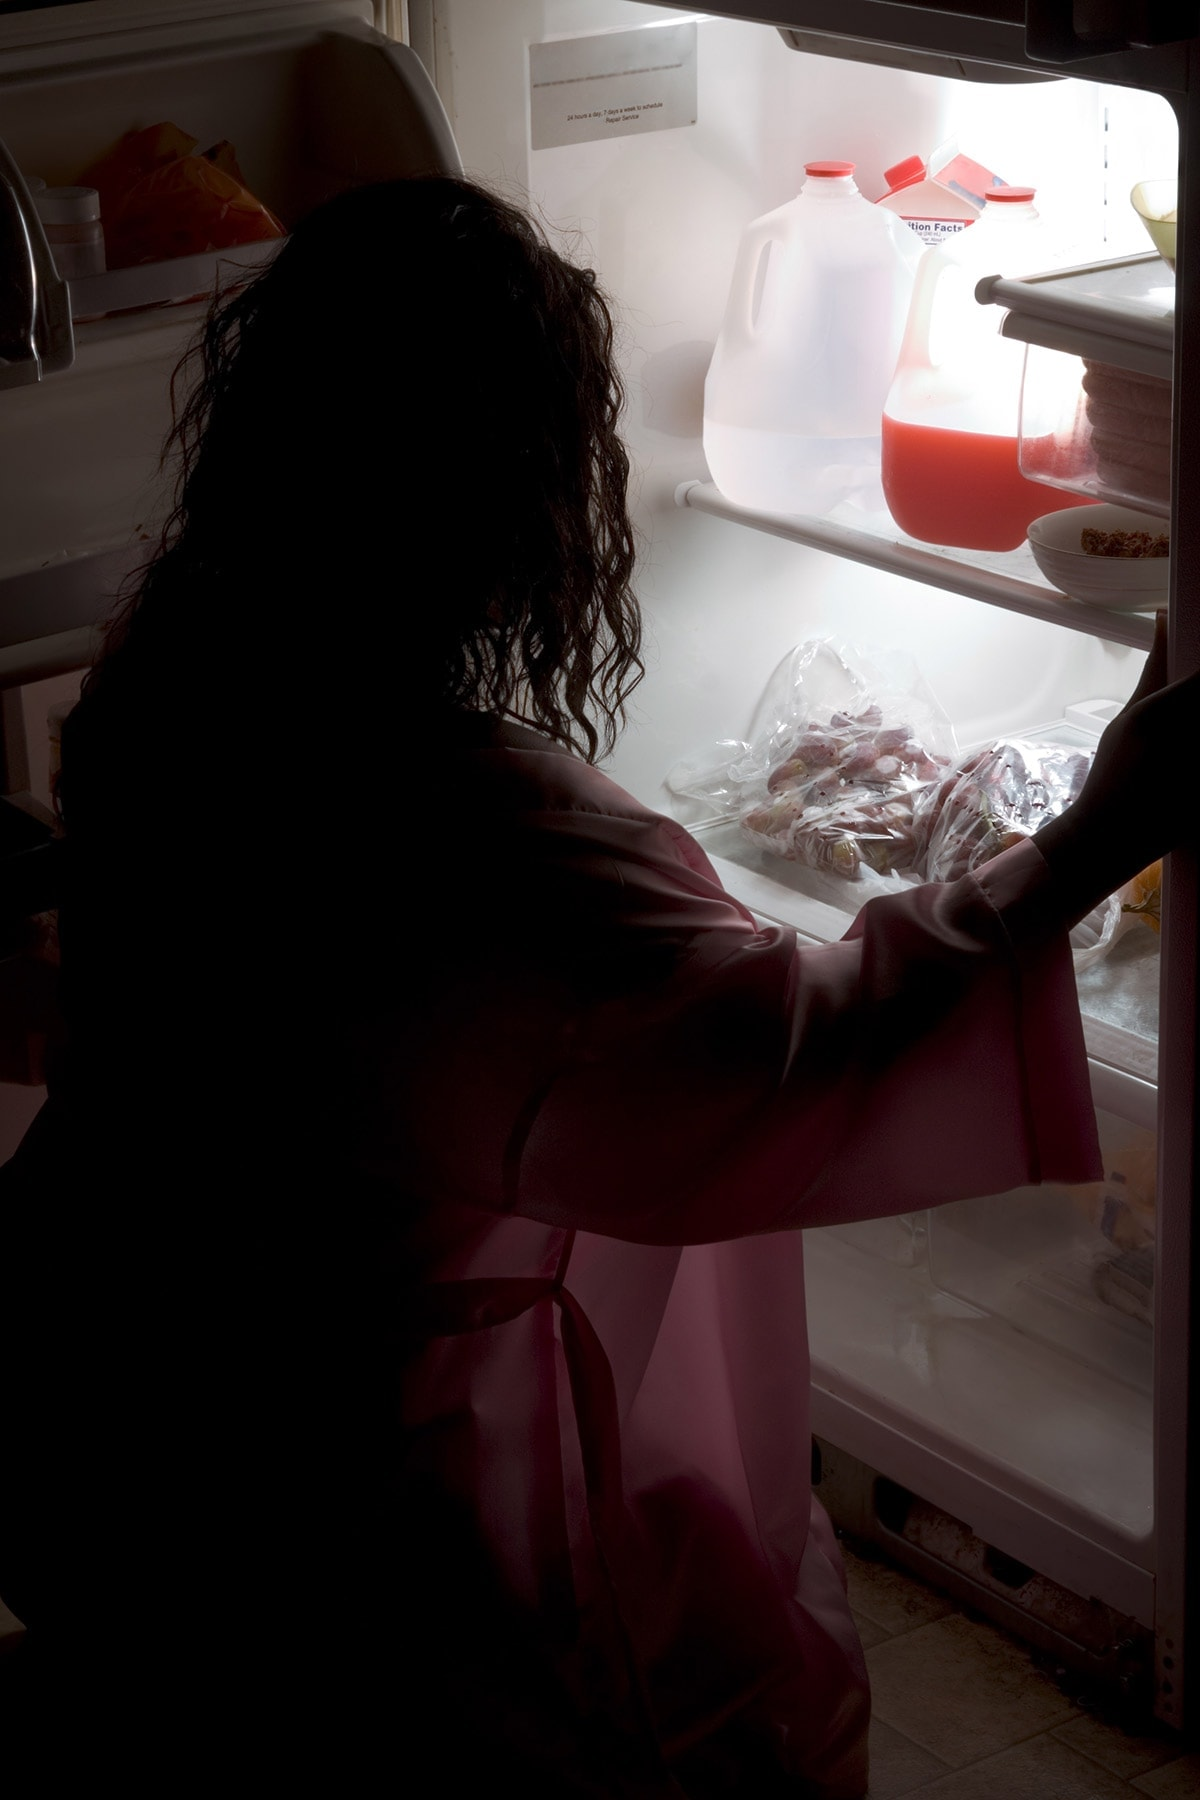 late night eating female in the dark, looking in the refrigerator